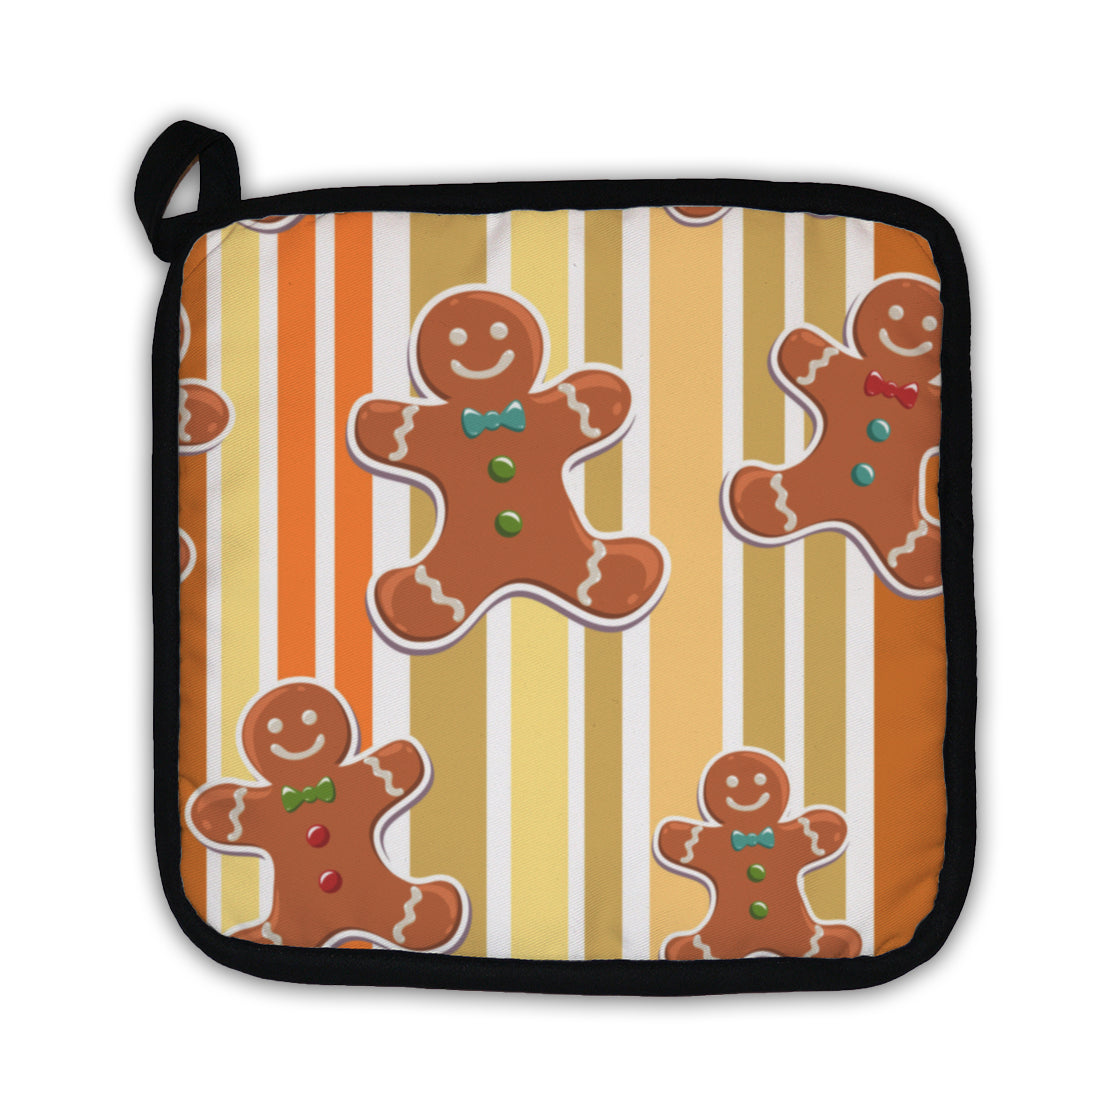 Potholder, Gingerbread Man Christmas Pattern